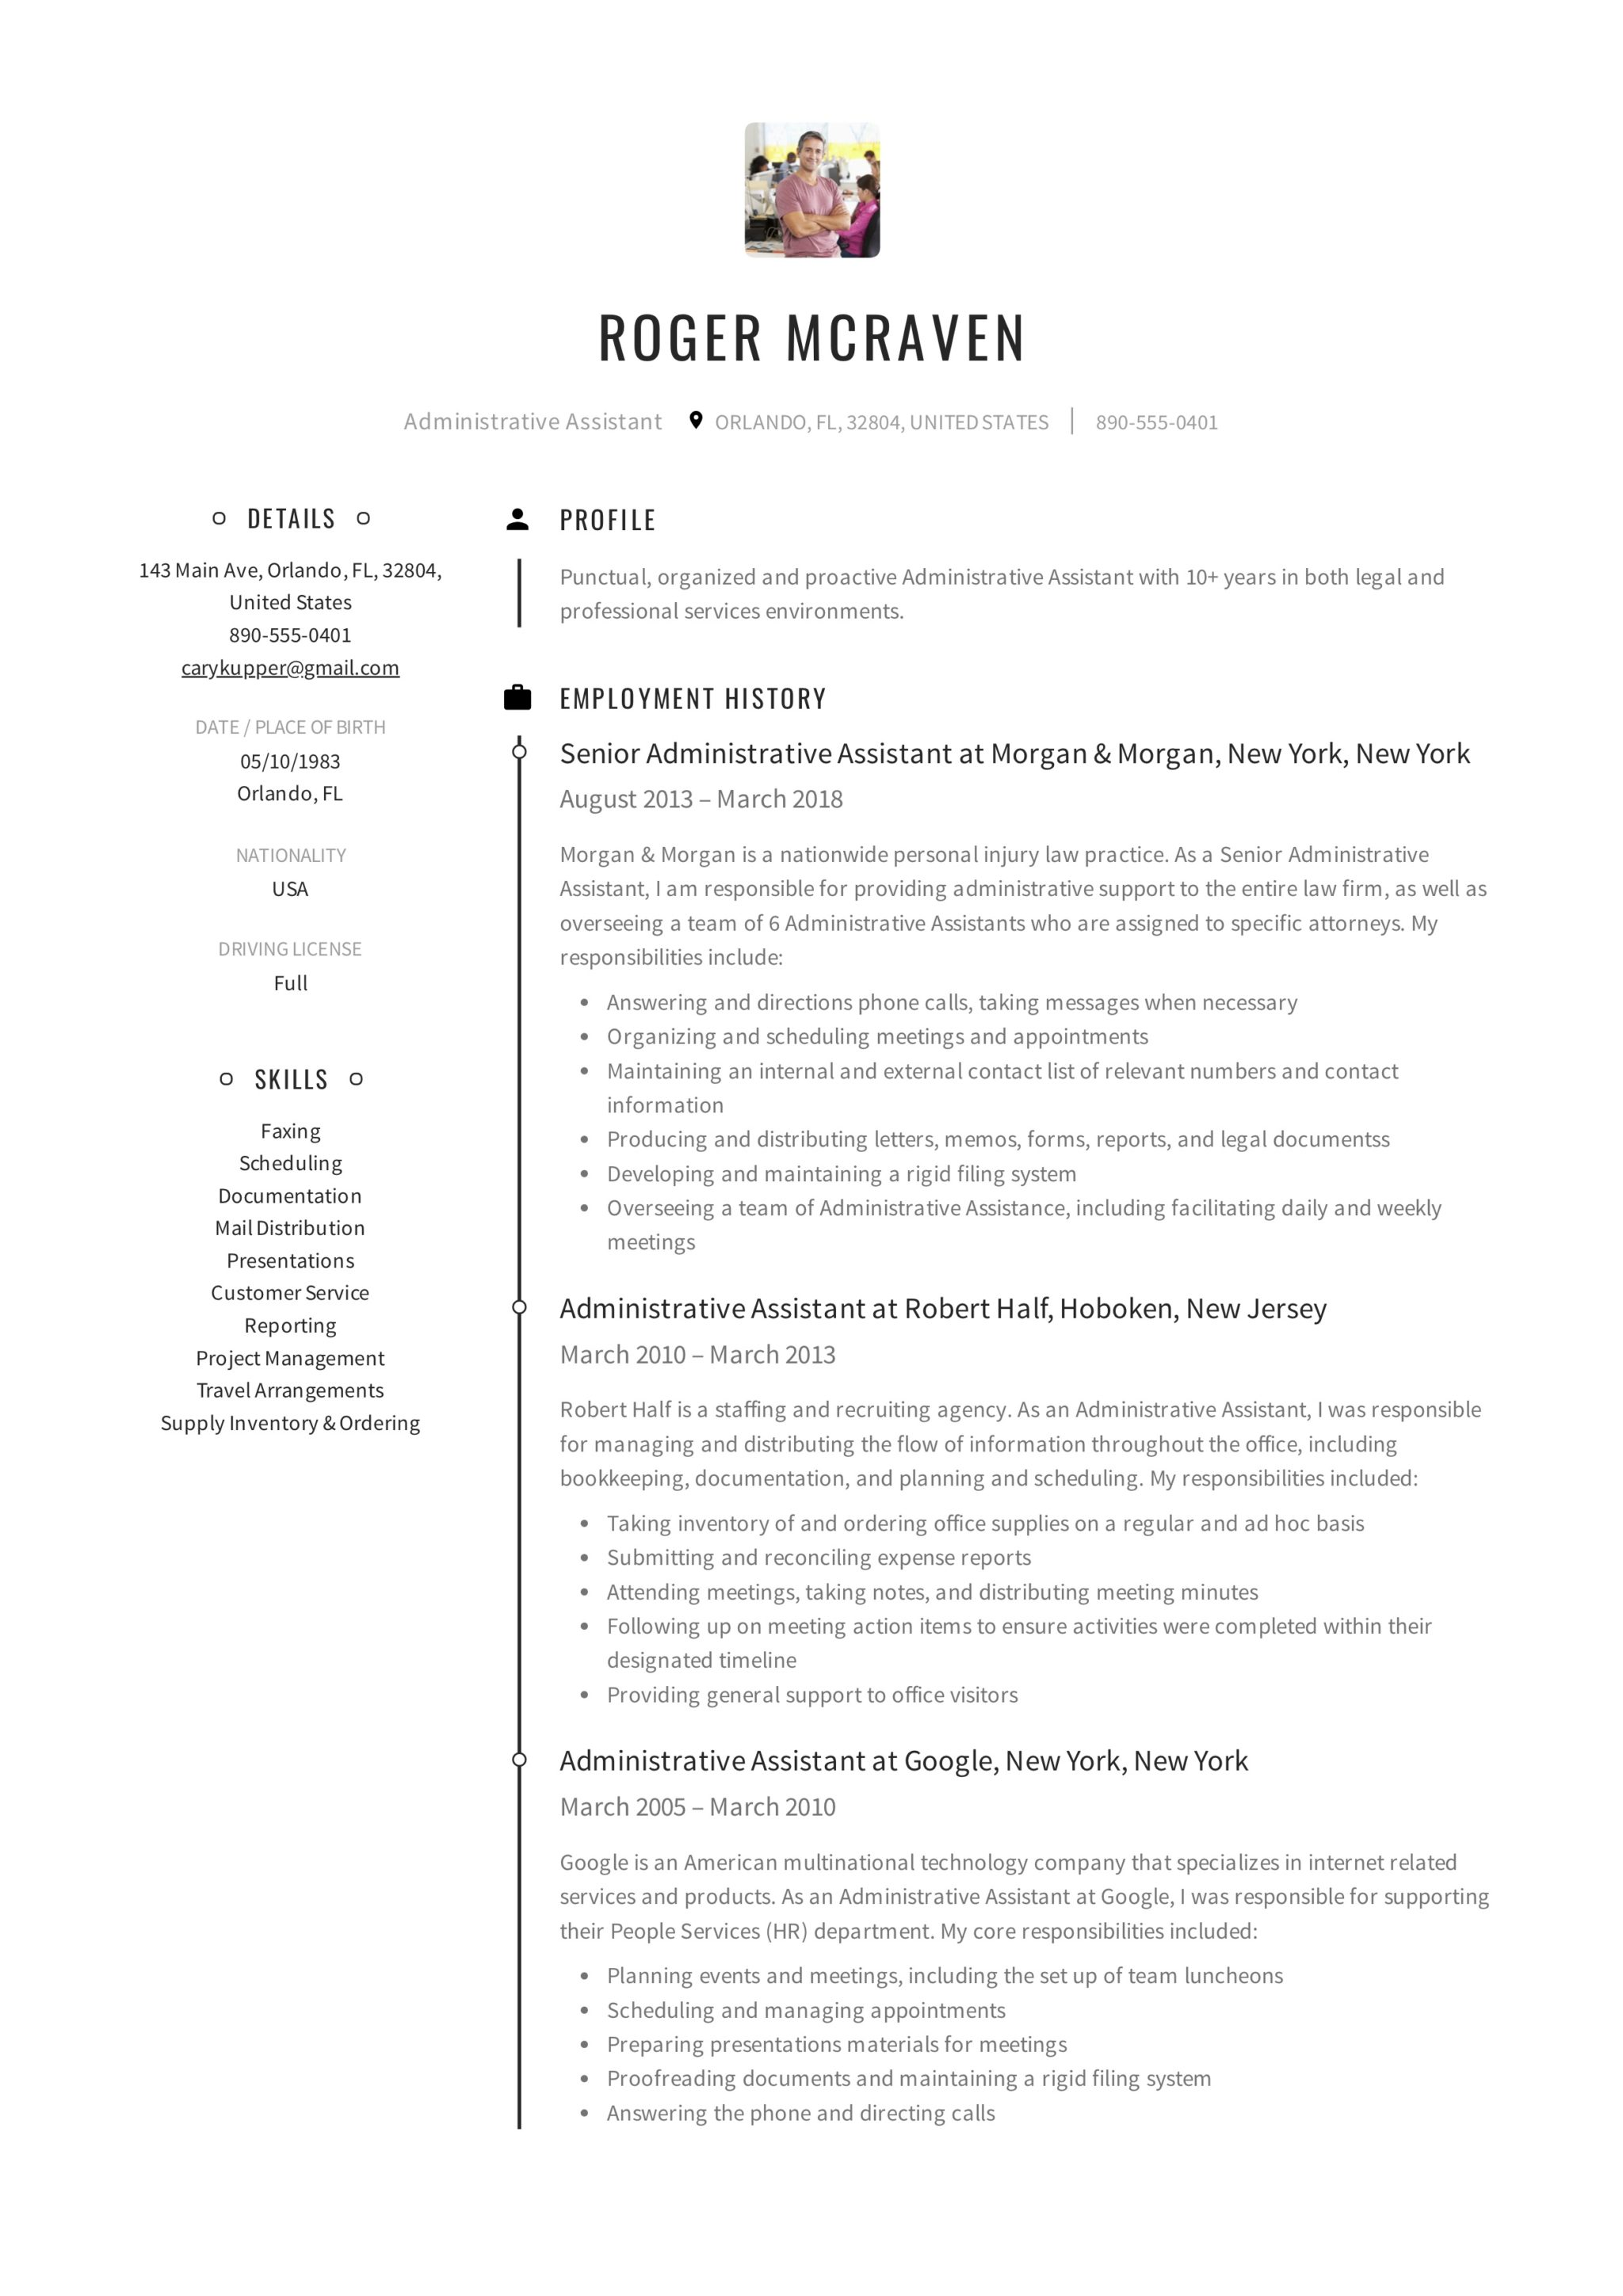 12 administrative assistant resume samples 2018 free downloads